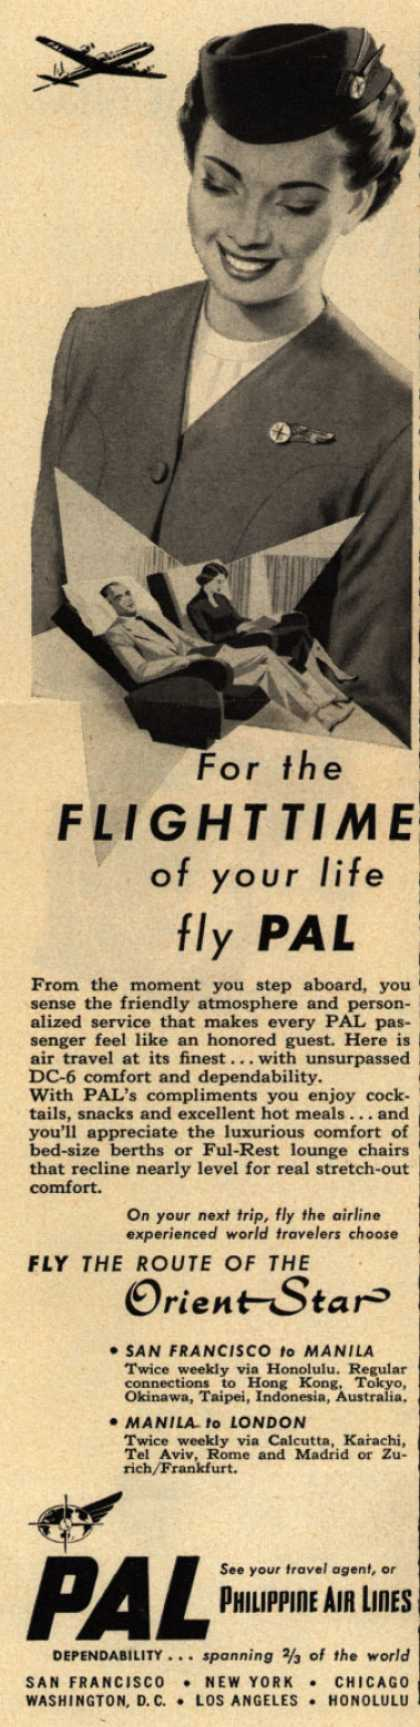 Philippine Air Line's Orient Star – For the Flighttime of your life, fly PAL (1952)